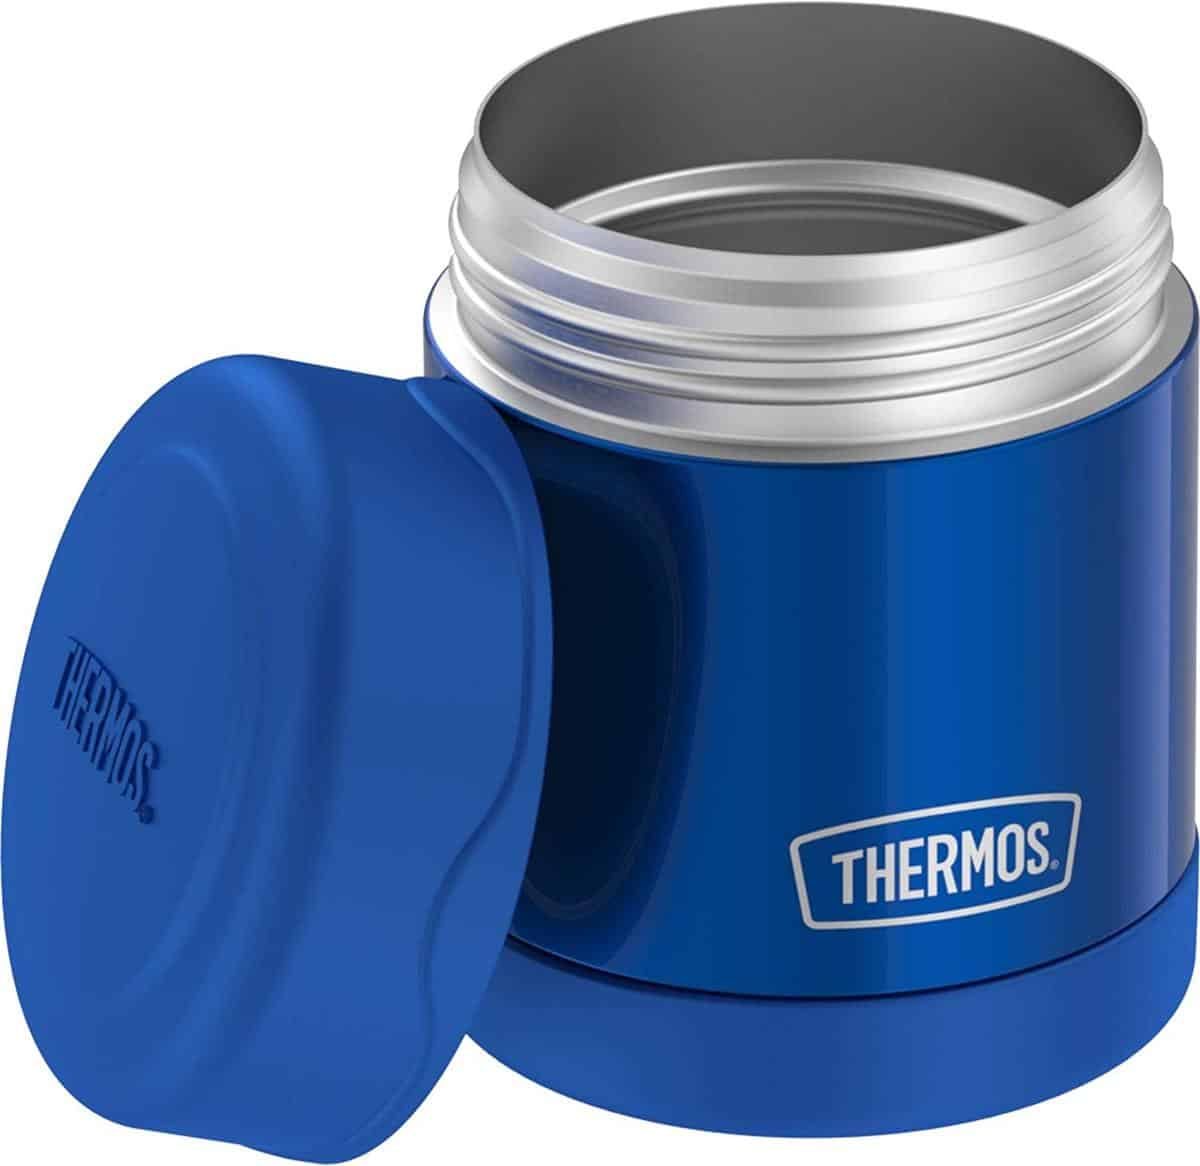 Blue Thermos Funtainer 10 Ounce Food Jar with lid propped against the side.